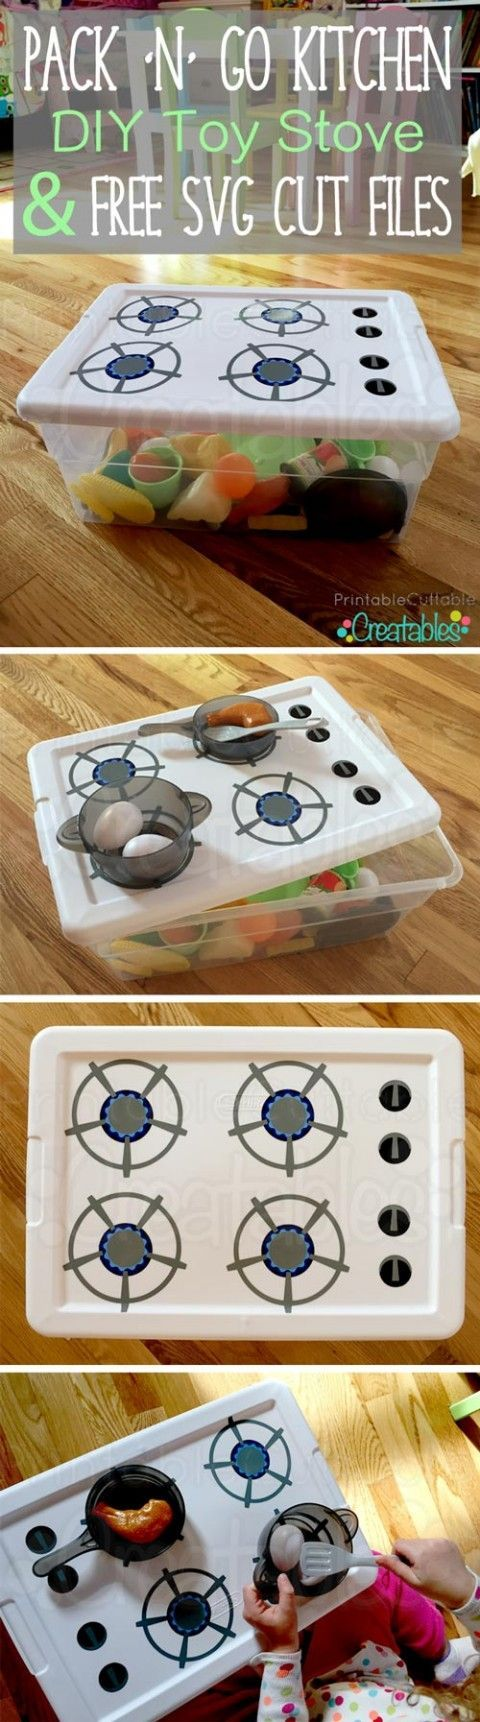 The 25 best toy storage ideas on pinterest kids storage living diy toy stove this is brilliant a little portable toy kitchen you can make solutioingenieria Image collections